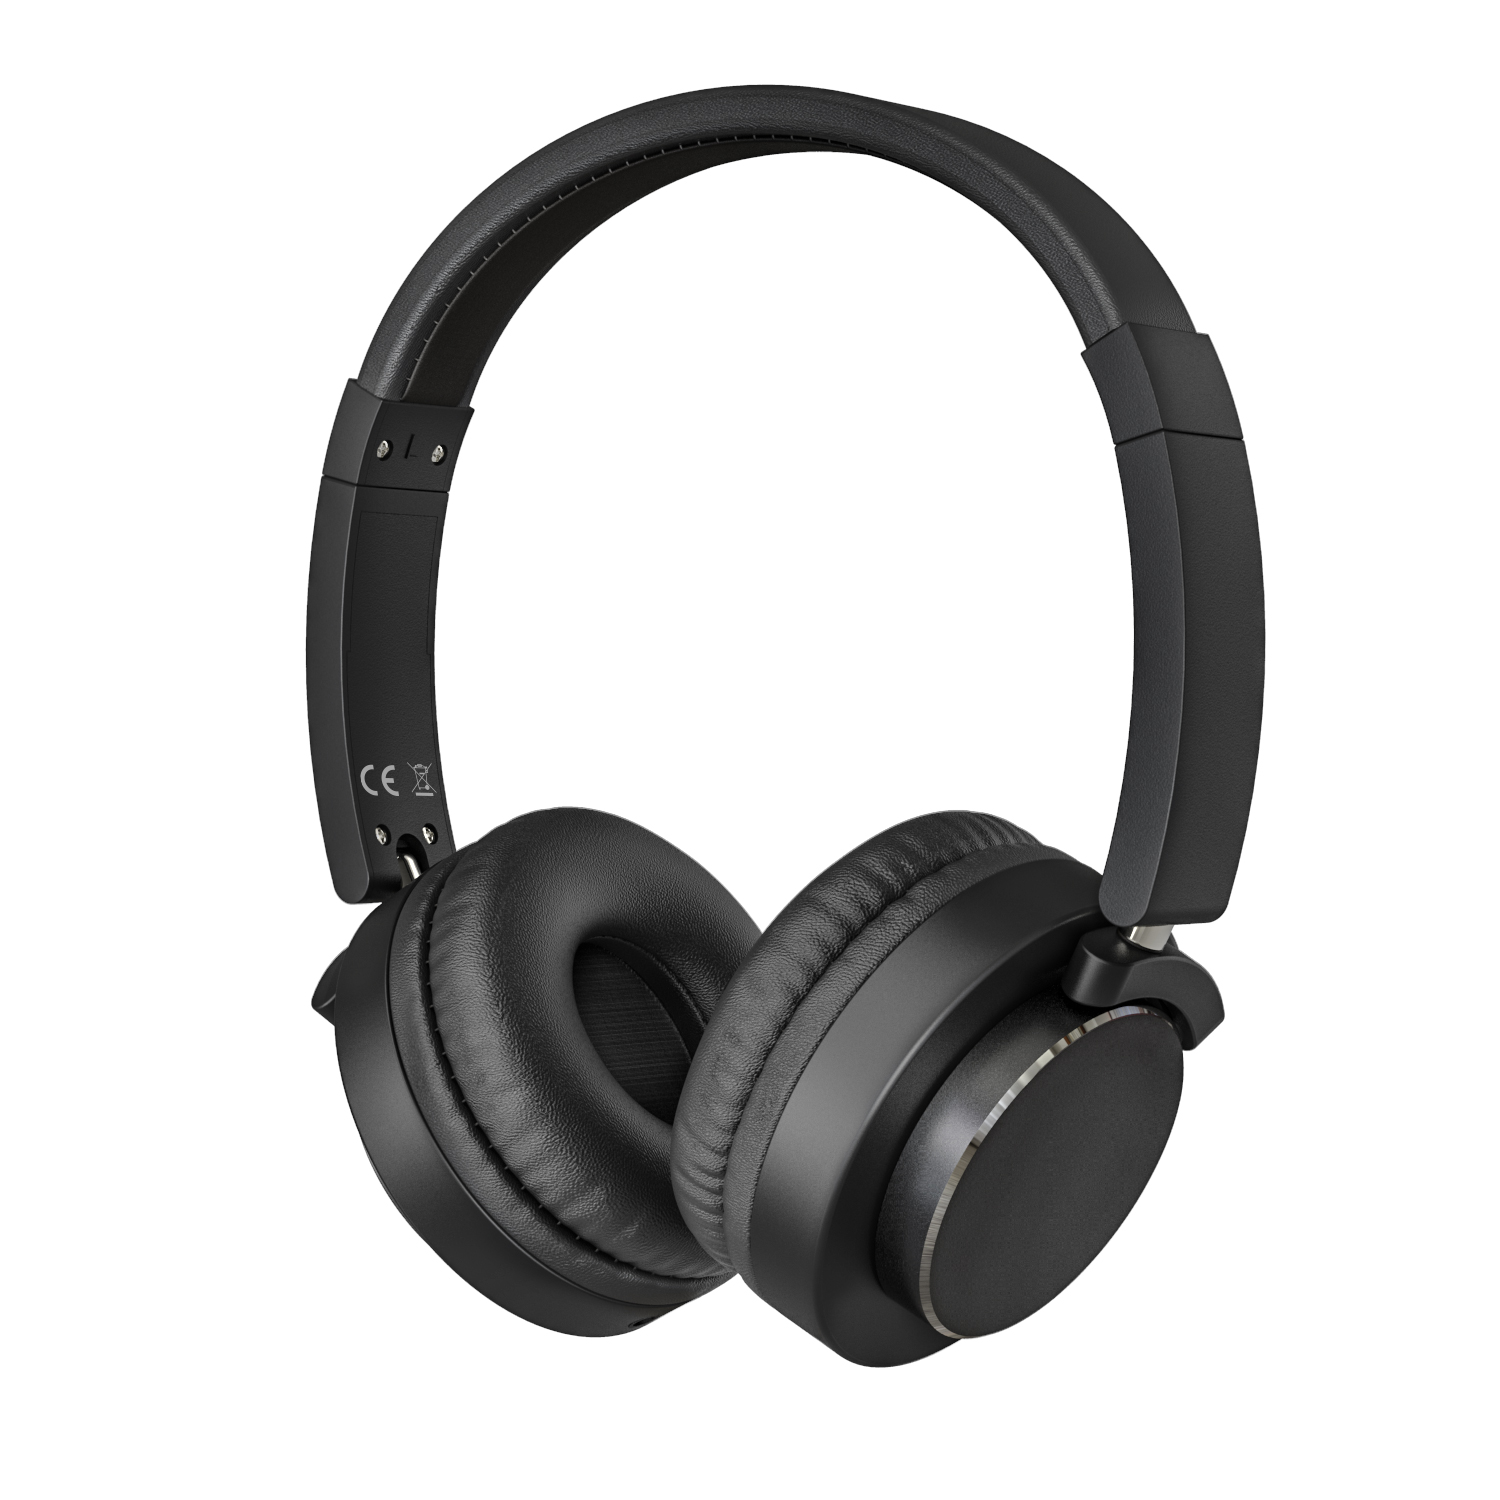 Hi-Fi Stereo Headphones On-Ear, MoKo Wired Earphones with Music Shared Port and Boom Microphone Lightweight Foldable Headset